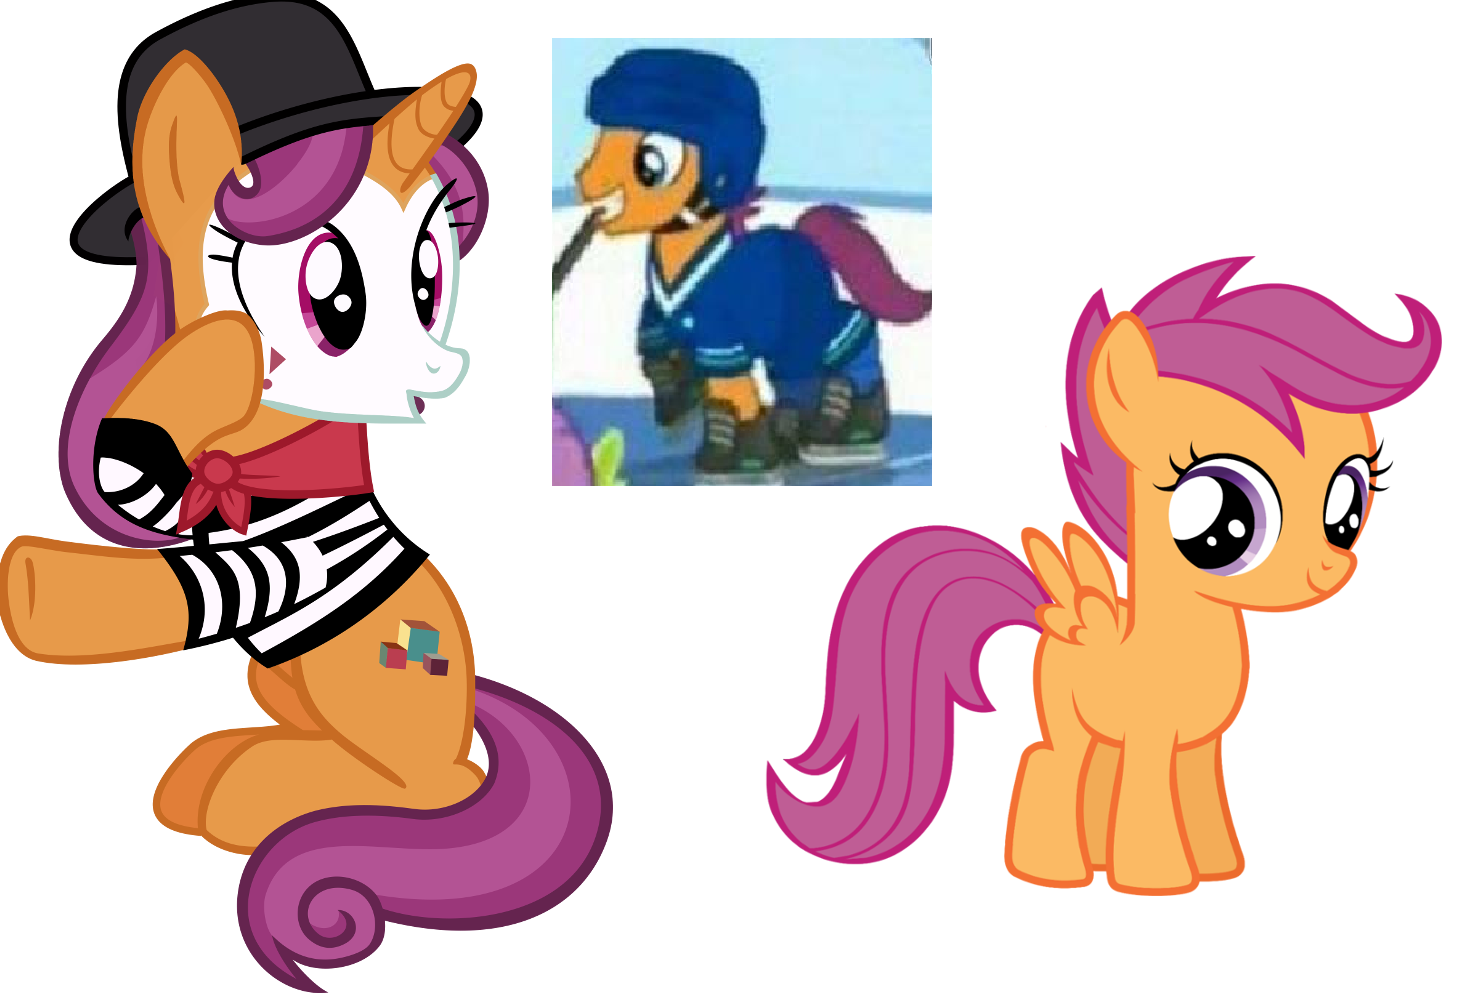 Scootaloo S Parents My Little Pony Friendship Is Magic Know Your Meme Scootaloo is called a chicken because of the episode stare master when applebloom is calling for scootaloo does not have any known crushes at this time. little pony friendship is magic